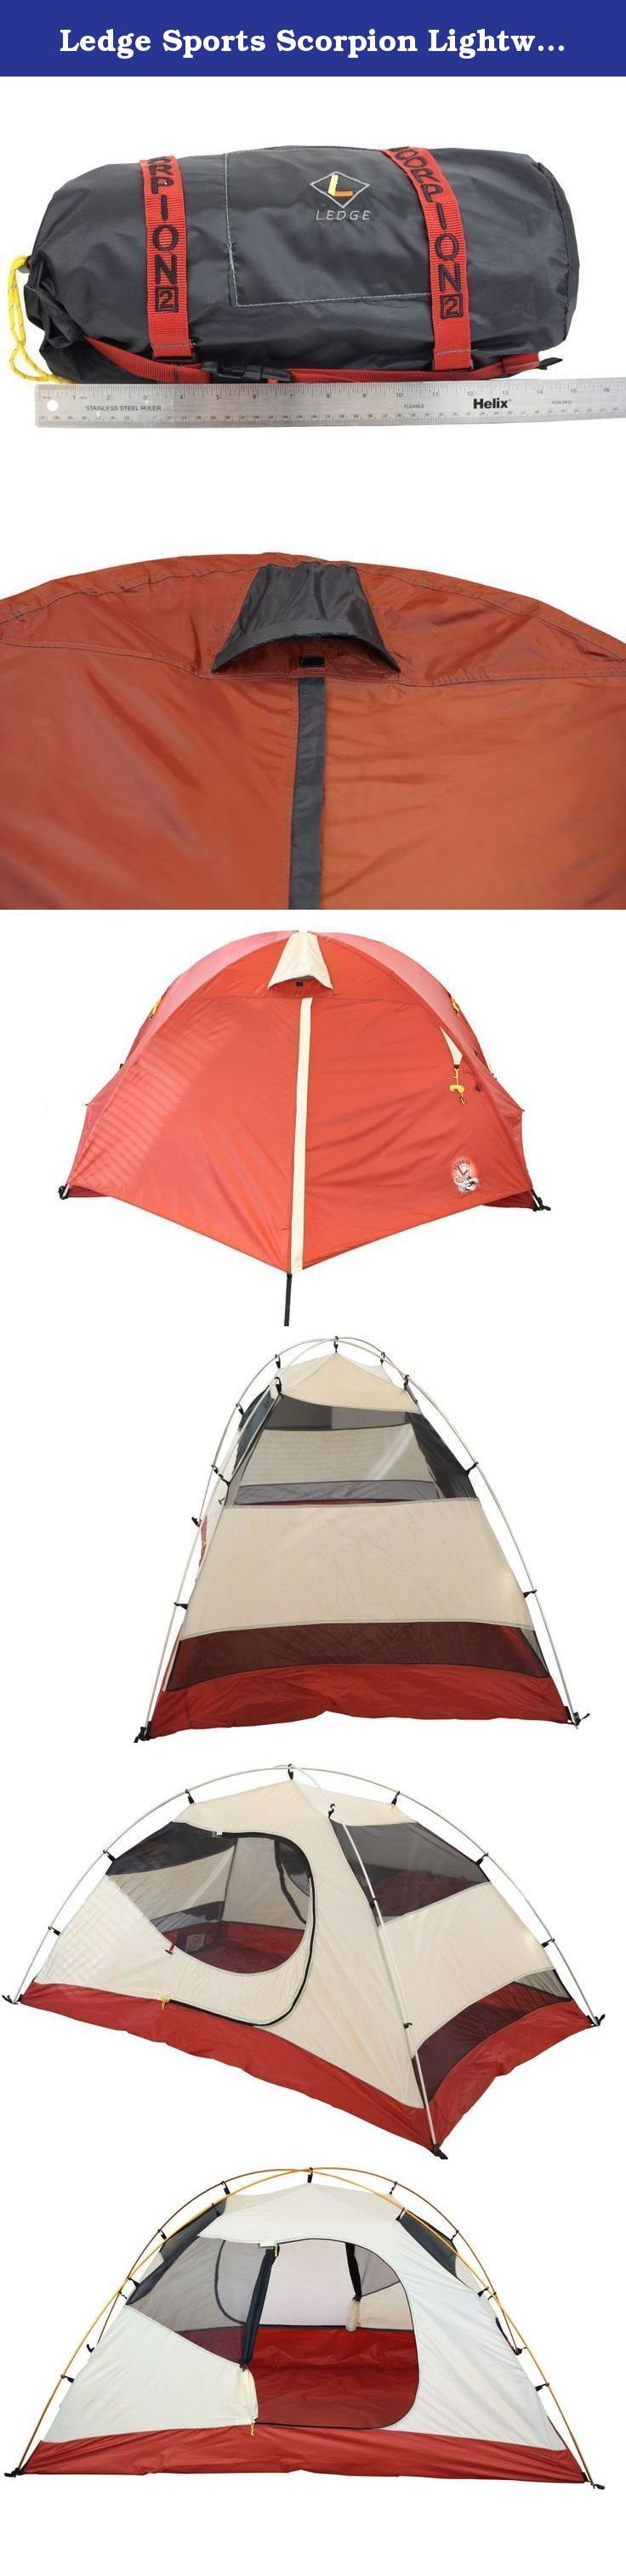 Ledge Sports Scorpion Lightweight 2 Person Tent (92 X 58 - 42-Inch Height, 5.2-Pounds). Feature for feature the best tent on the market in price and specification. It includes full heat tape proprietary design, sturdy 2 aluminum pole assembly, and extensive waterproofing. It also provides exemplary internal storage and organization choices highlighting the dual door and vestibules.